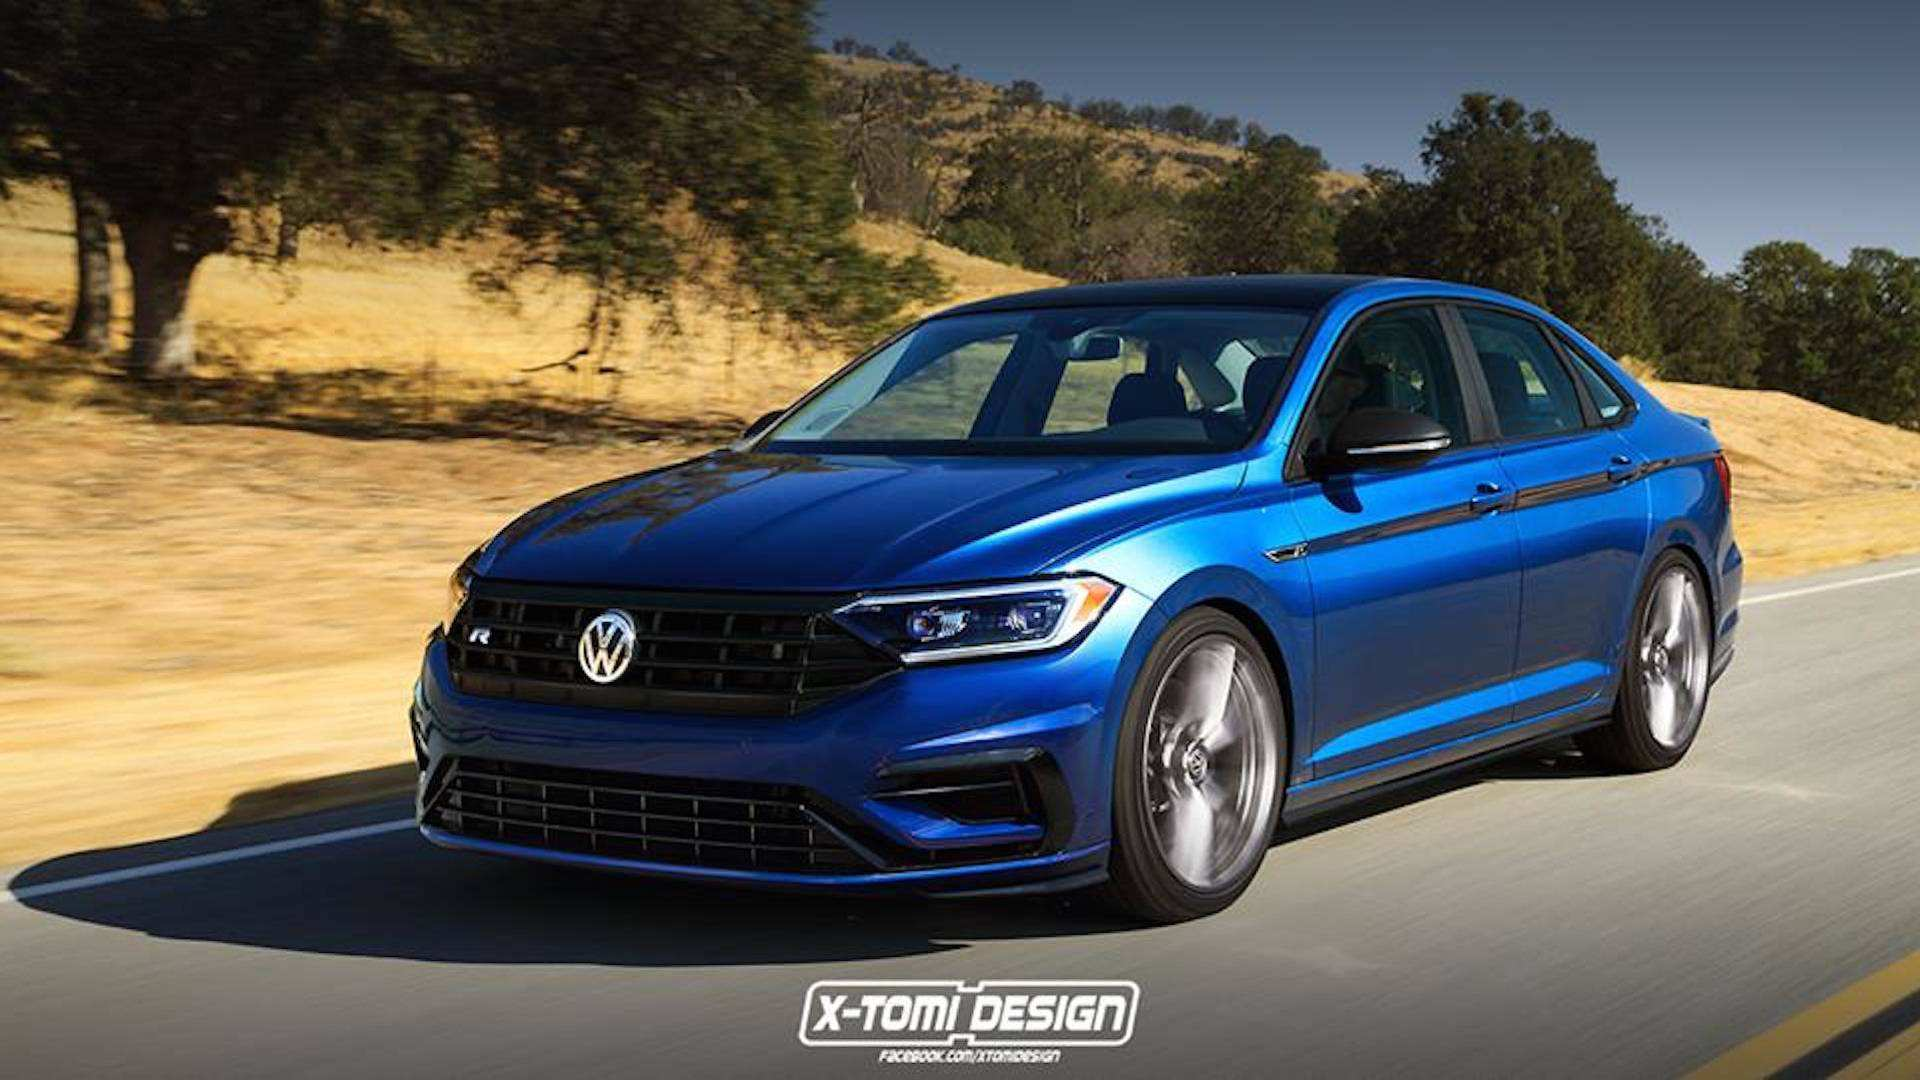 81 All New Volkswagen R Line 2019 Redesign And Concept Review with Volkswagen R Line 2019 Redesign And Concept